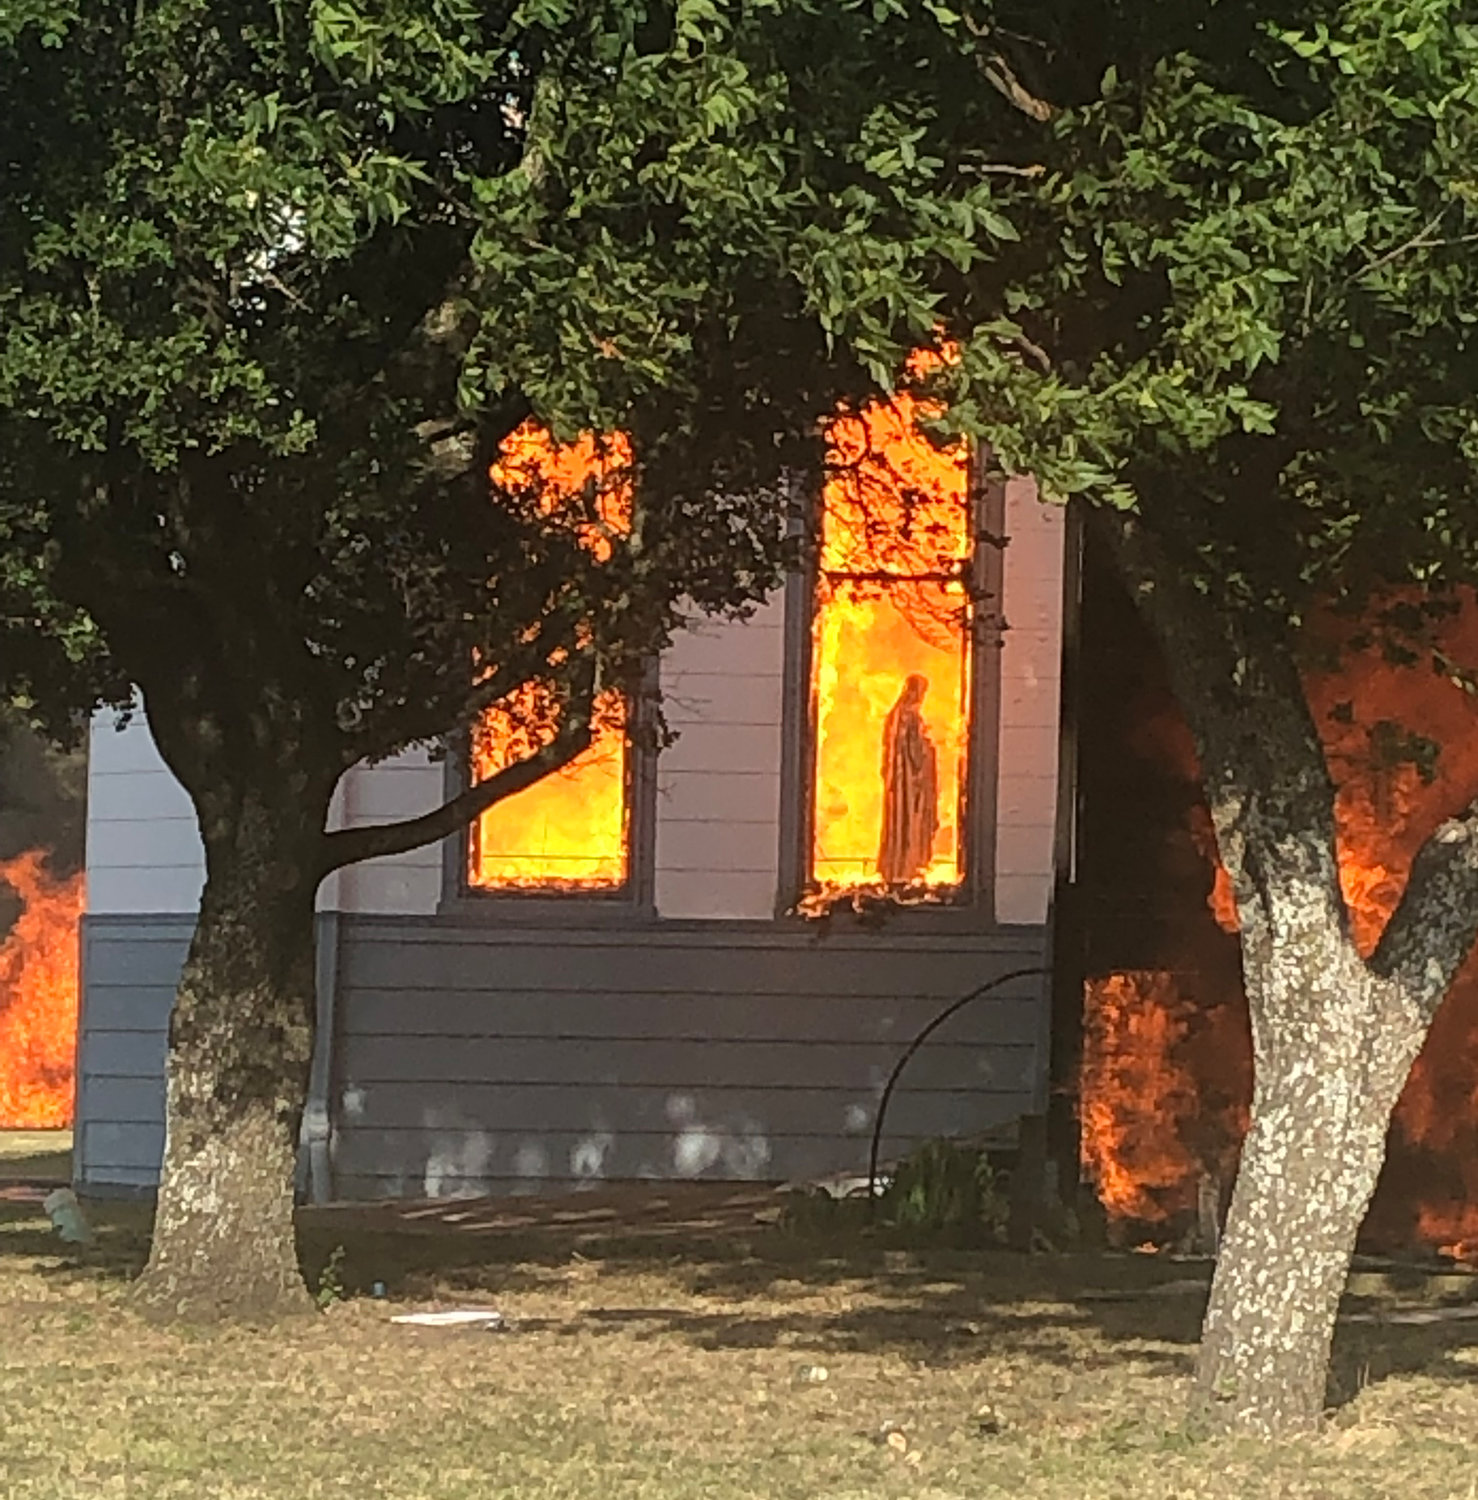 A statue of Mary is seen amid flames through a window in the Church of the Visitation in Westphalia, Texas, July, 29, 2019. The nearly 125-year old wooden church with bell towers on each side, burned to the ground that morning. Since 1883 the parish has served the Catholic community of southwestern Falls County, many of whom are descendents of immigrants from the northwest German region of Westphalia.